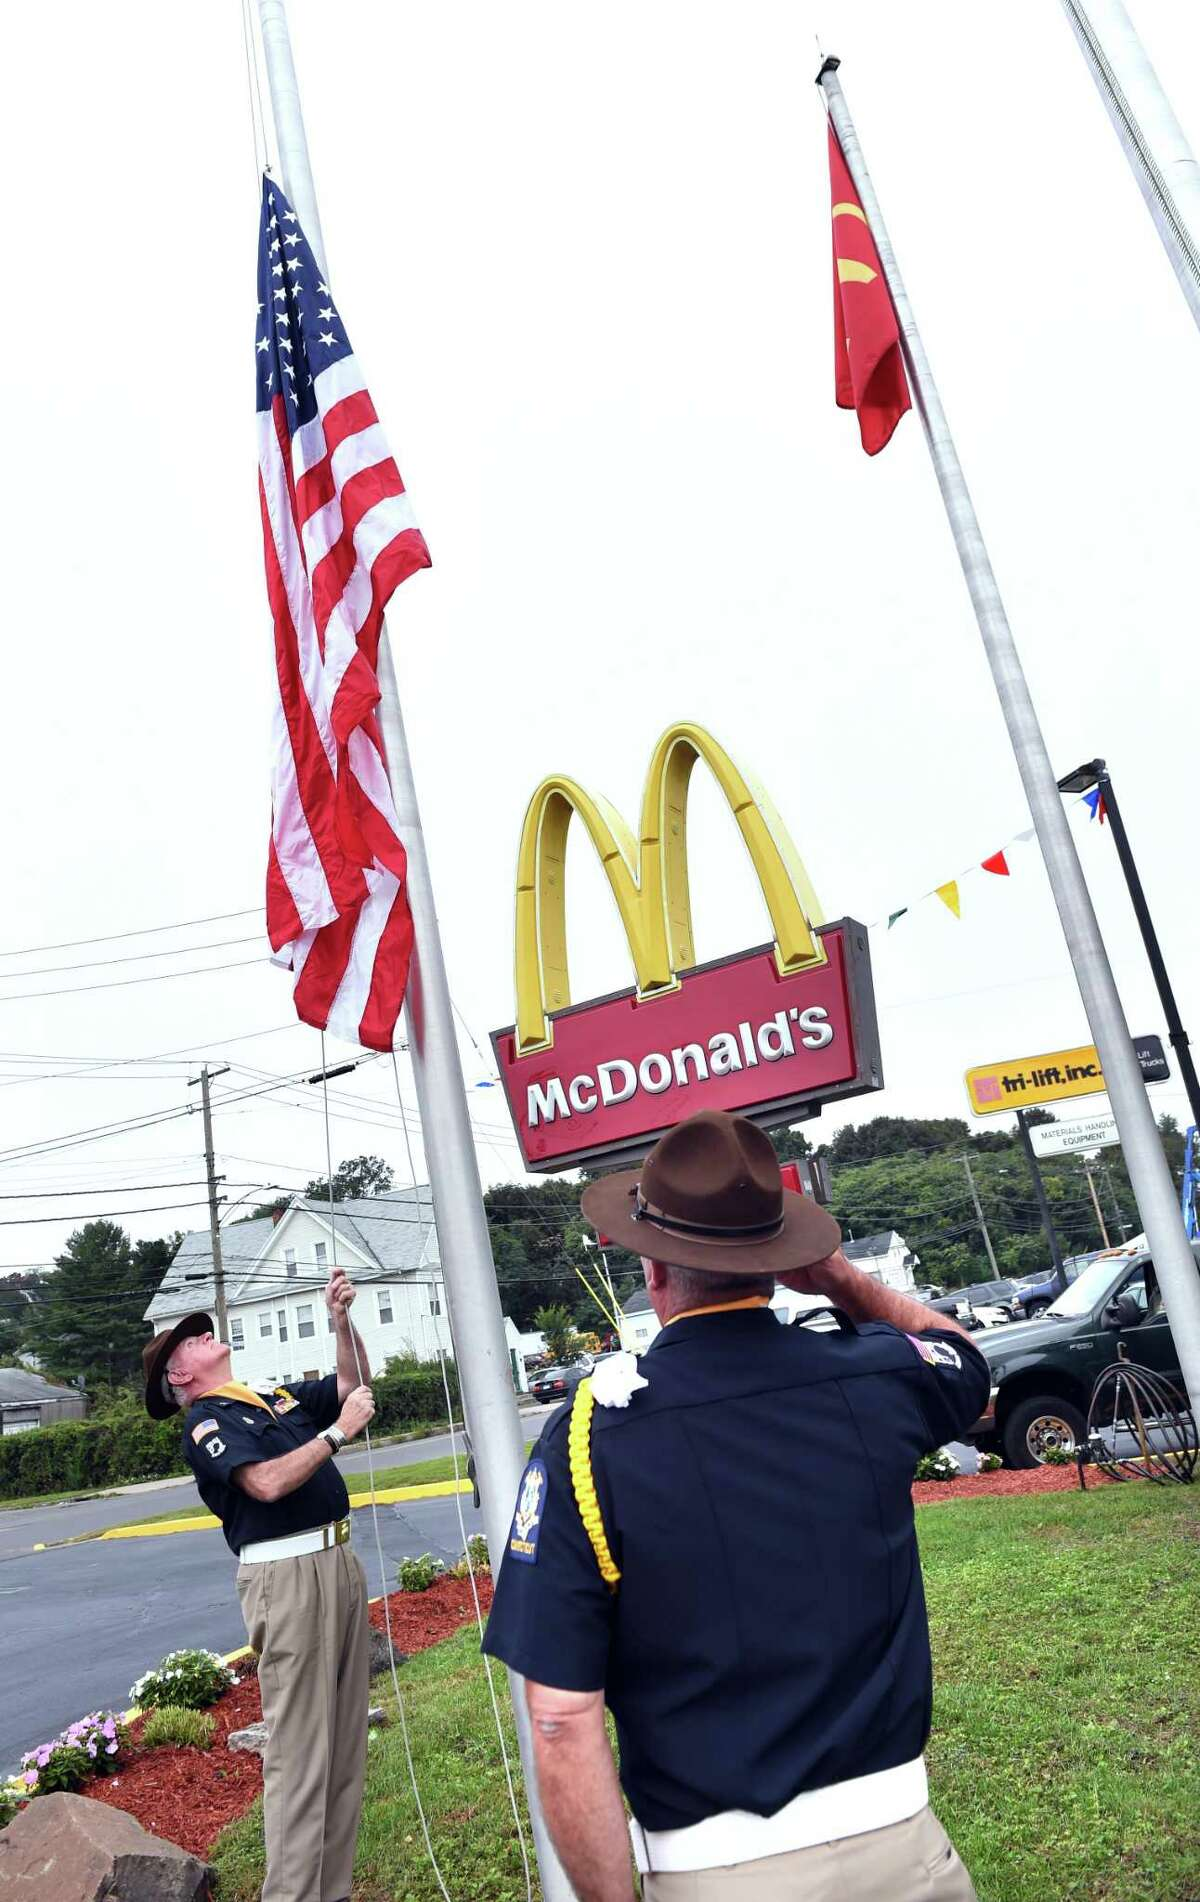 Jim Botsacos (right) salutes as Steve Fahy of the State of Connecticut American Legion Color Guard raises the United States flag at the grand re-opening of the East Haven McDonald's on October 2, 2018.